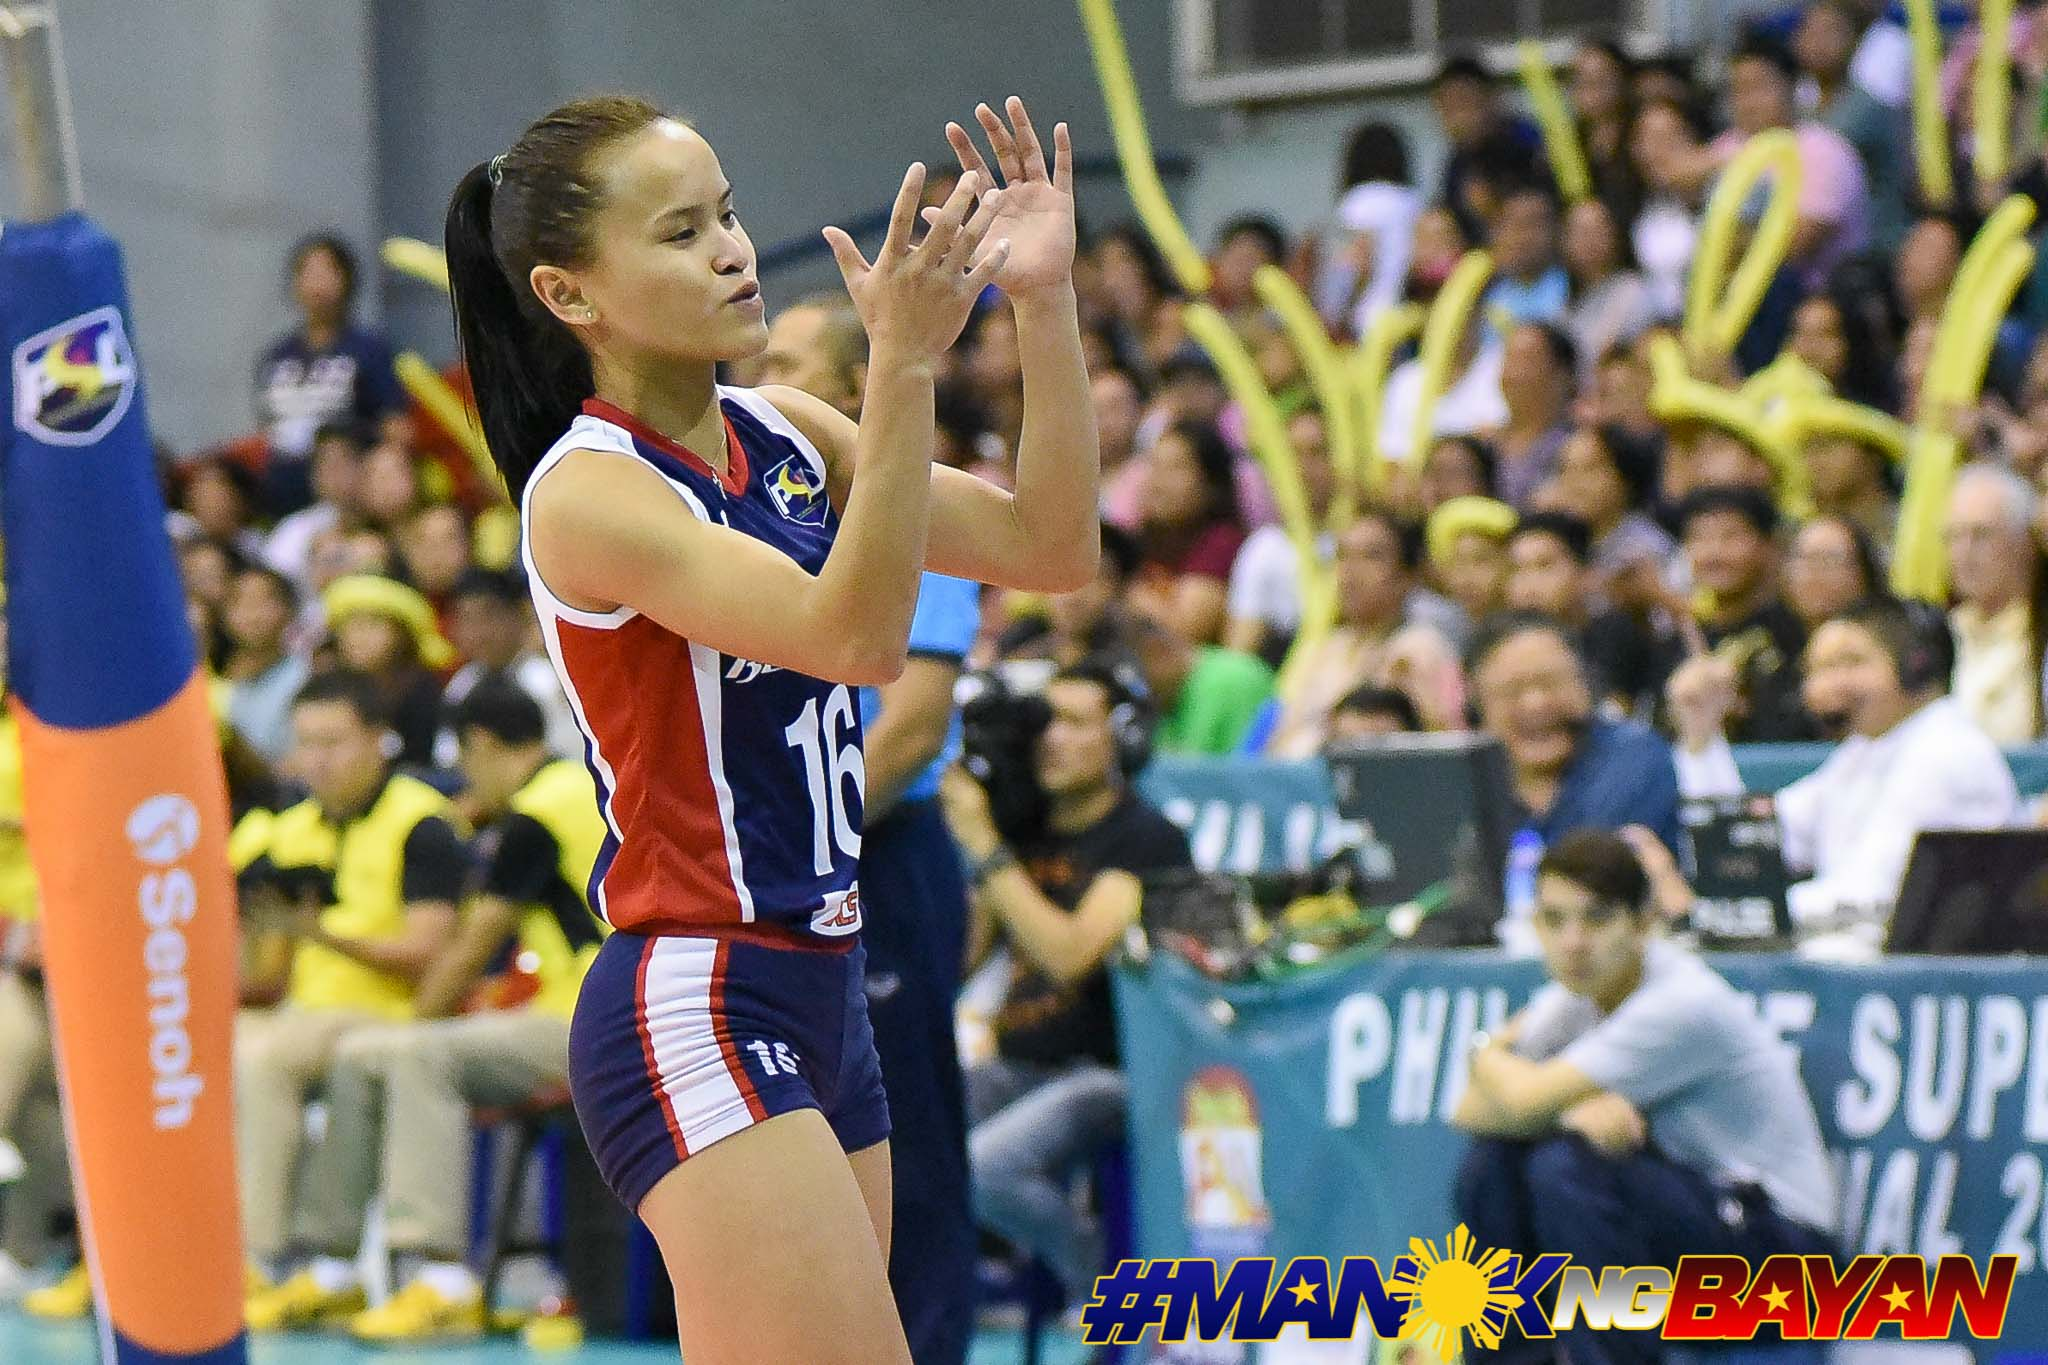 Tiebreaker Times Ging Balse-Pabayo elated to reunite with fellow Tigresses as her career winds down News PSL Volleyball  Shaq delos Santos Rhea Dimaculangan Petron Blaze Spikers Ging Balse Cherry Rondina Aiza Maizo-Pontillas 2018 PSL Season 2018 PSL All Filipino Conference